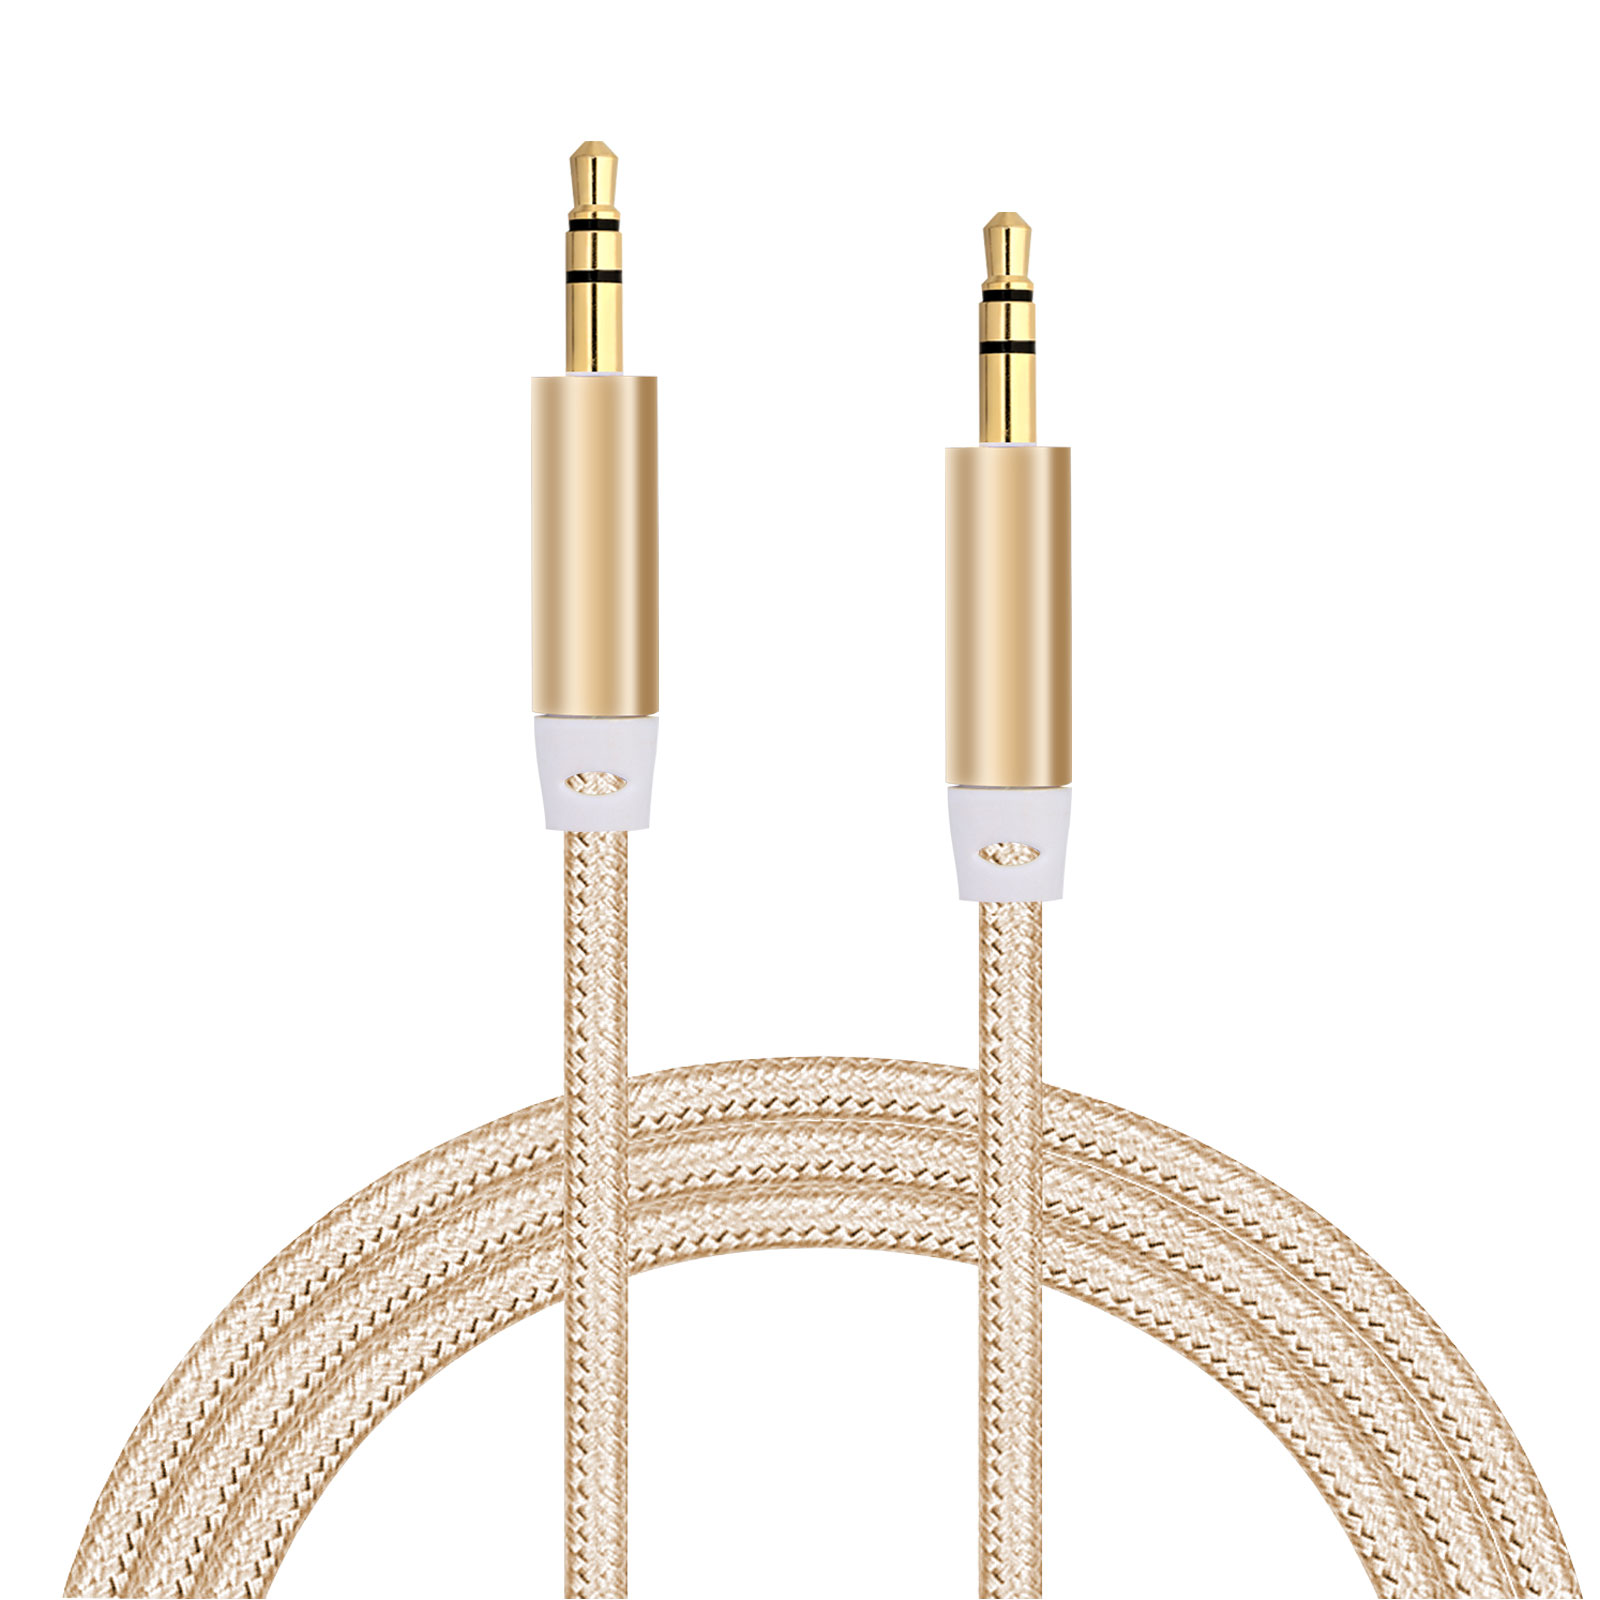 3.5mm Male to Male Auxiliary Audio Cable for Car/Auto Stereo Speakers, Headphones, Mp3 Player, iPhone, iPod, iPad & Computer